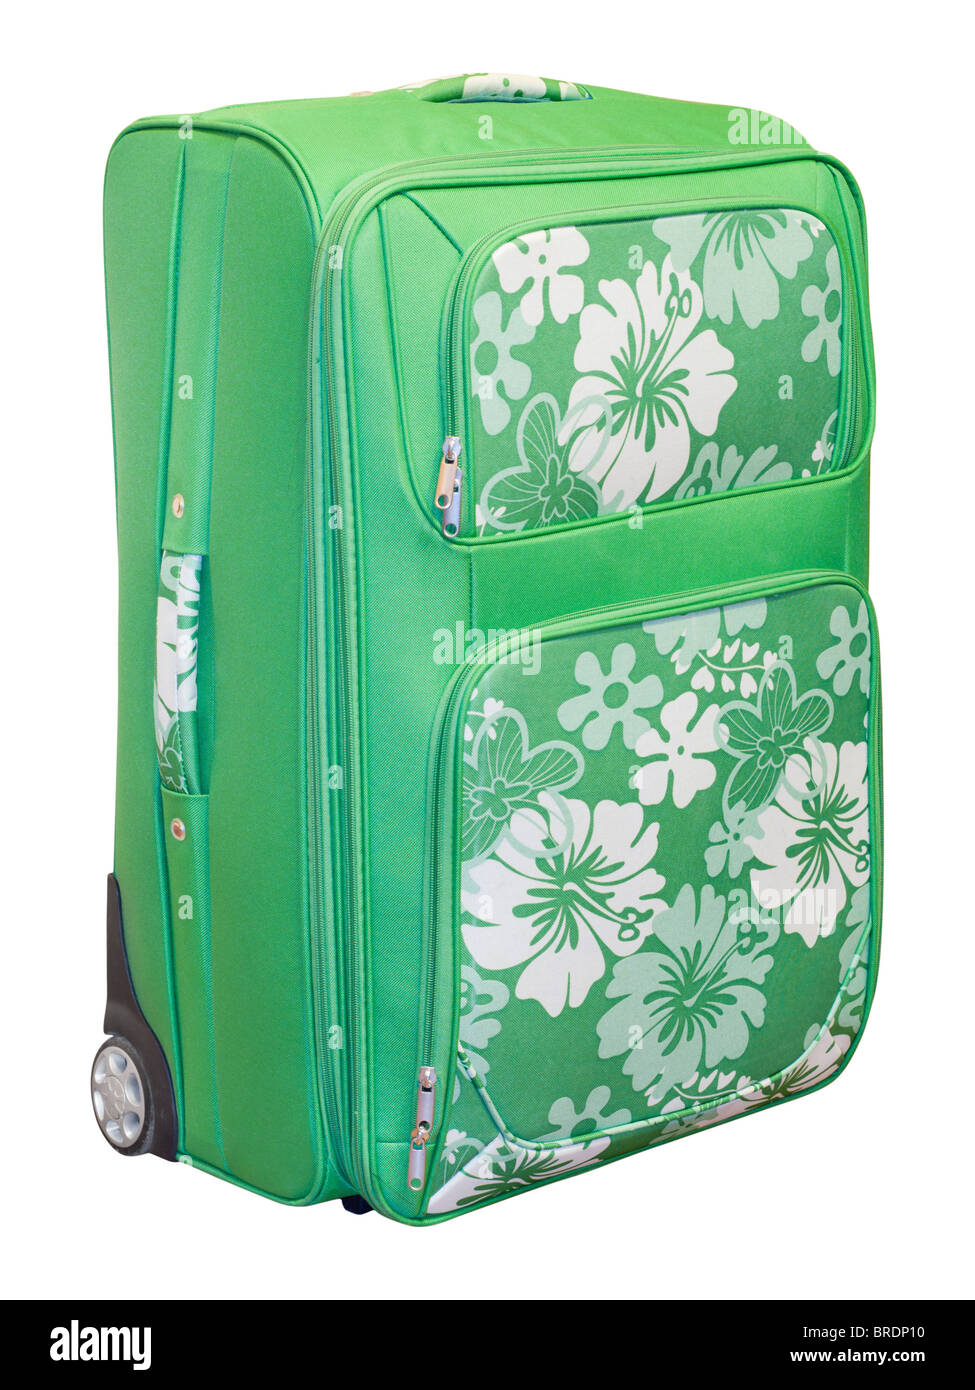 Green travel suitcase. Isolated on white background with clipping path. - Stock Image